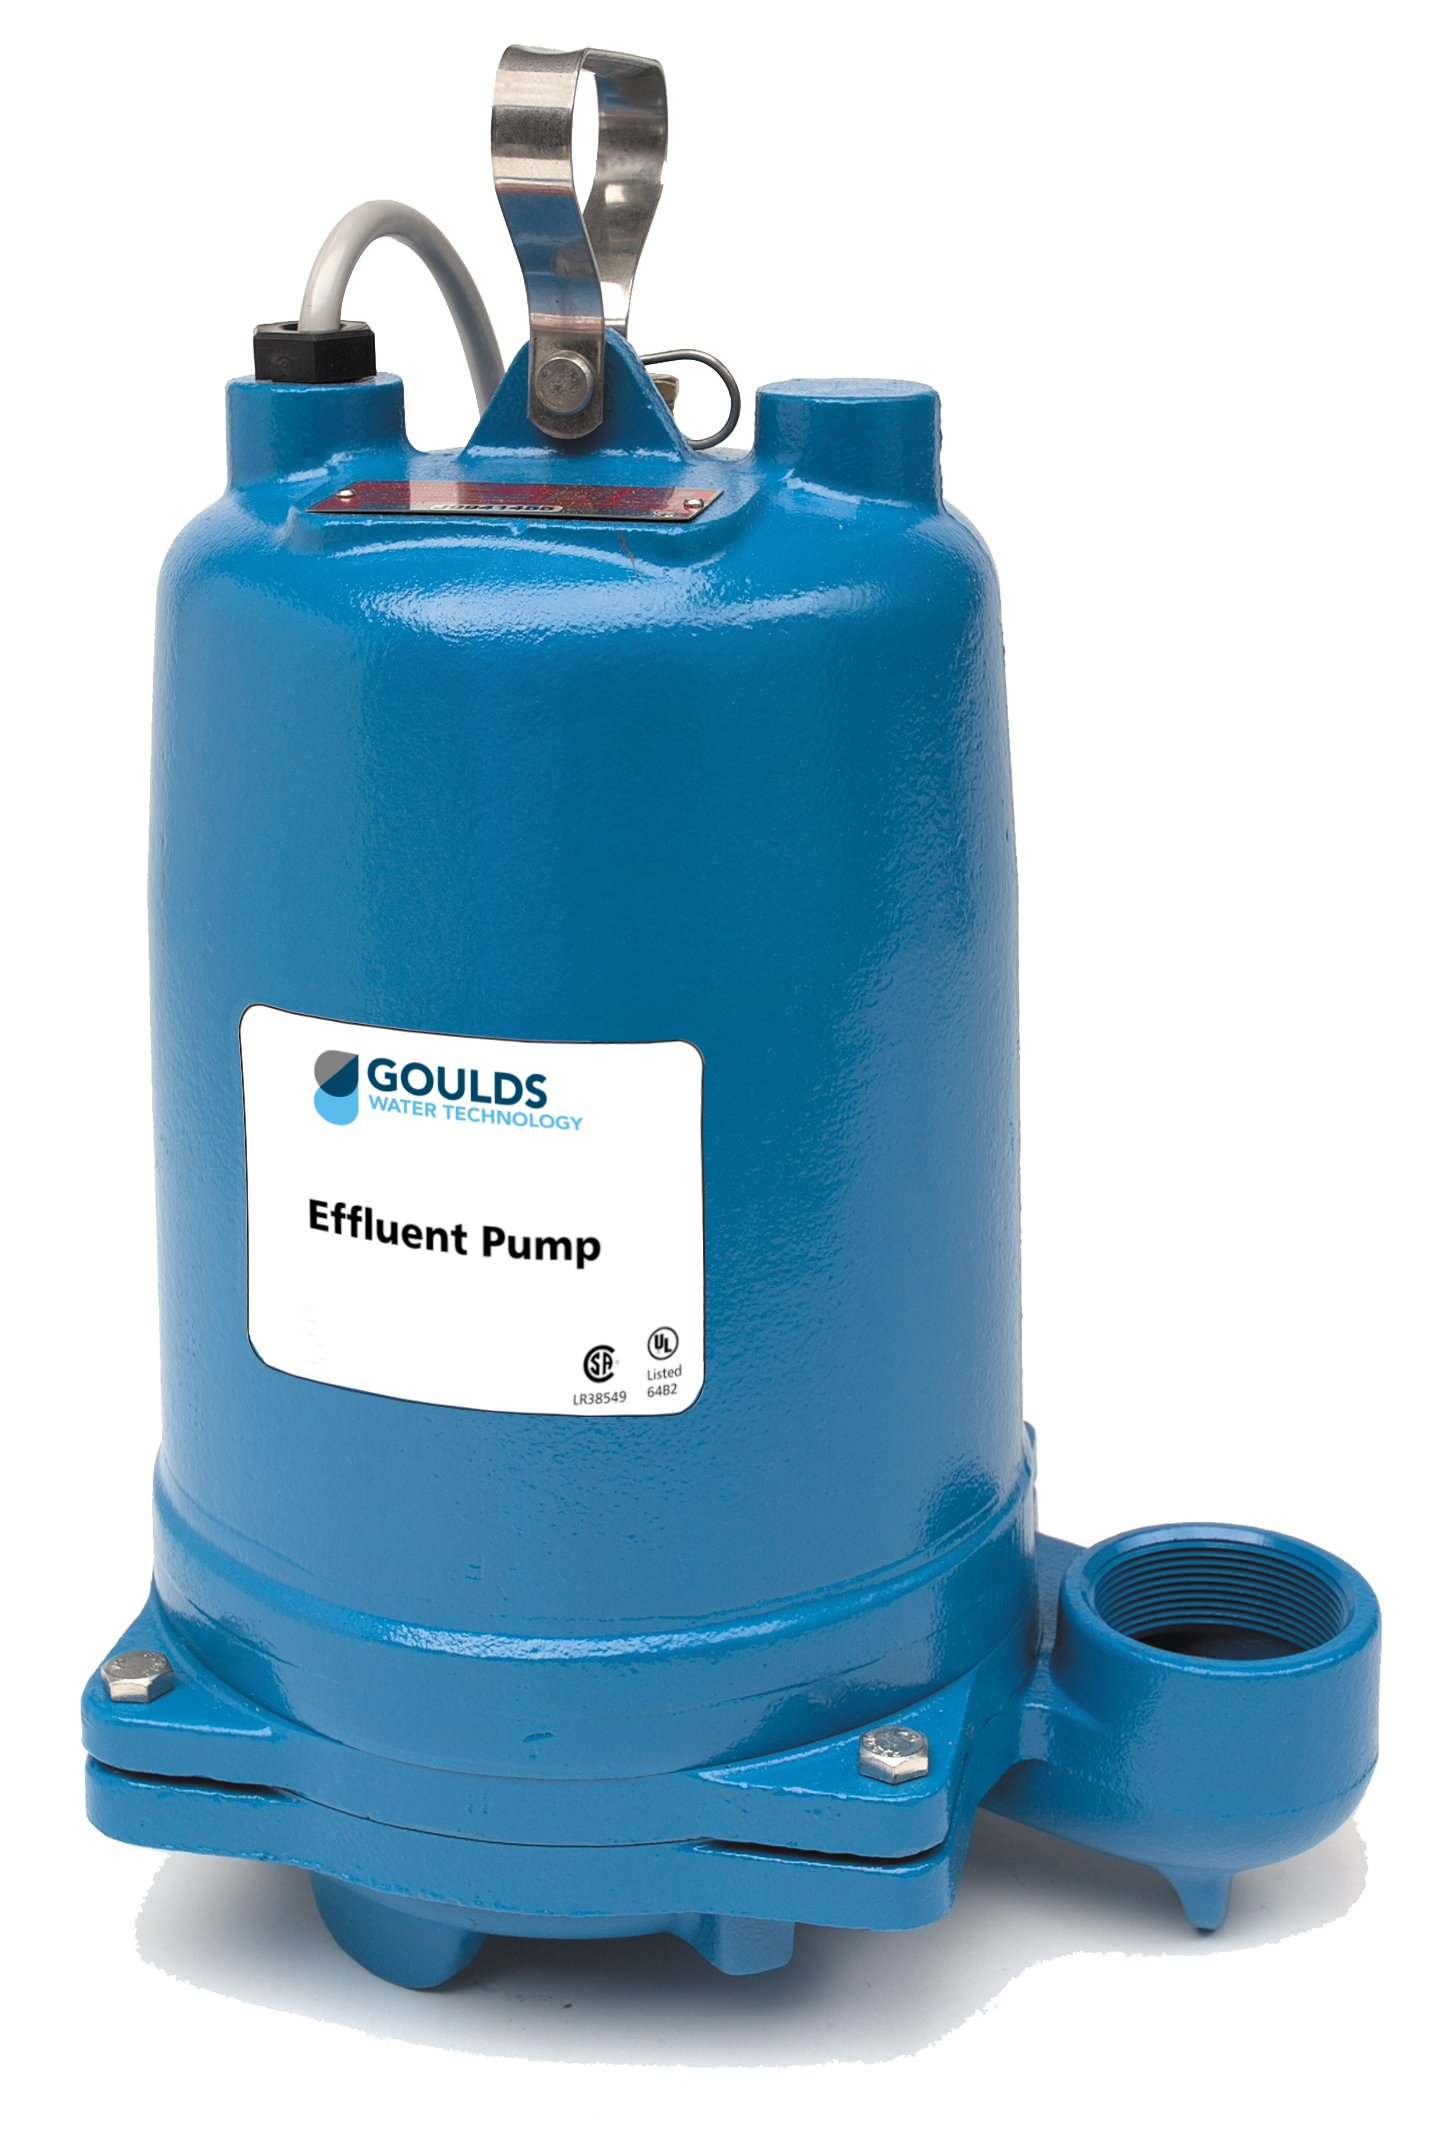 Goulds WE0511HH Submersible Effluent Pump, 1/2 HP, Single Phase, 115 V, 14.5 Max Amps